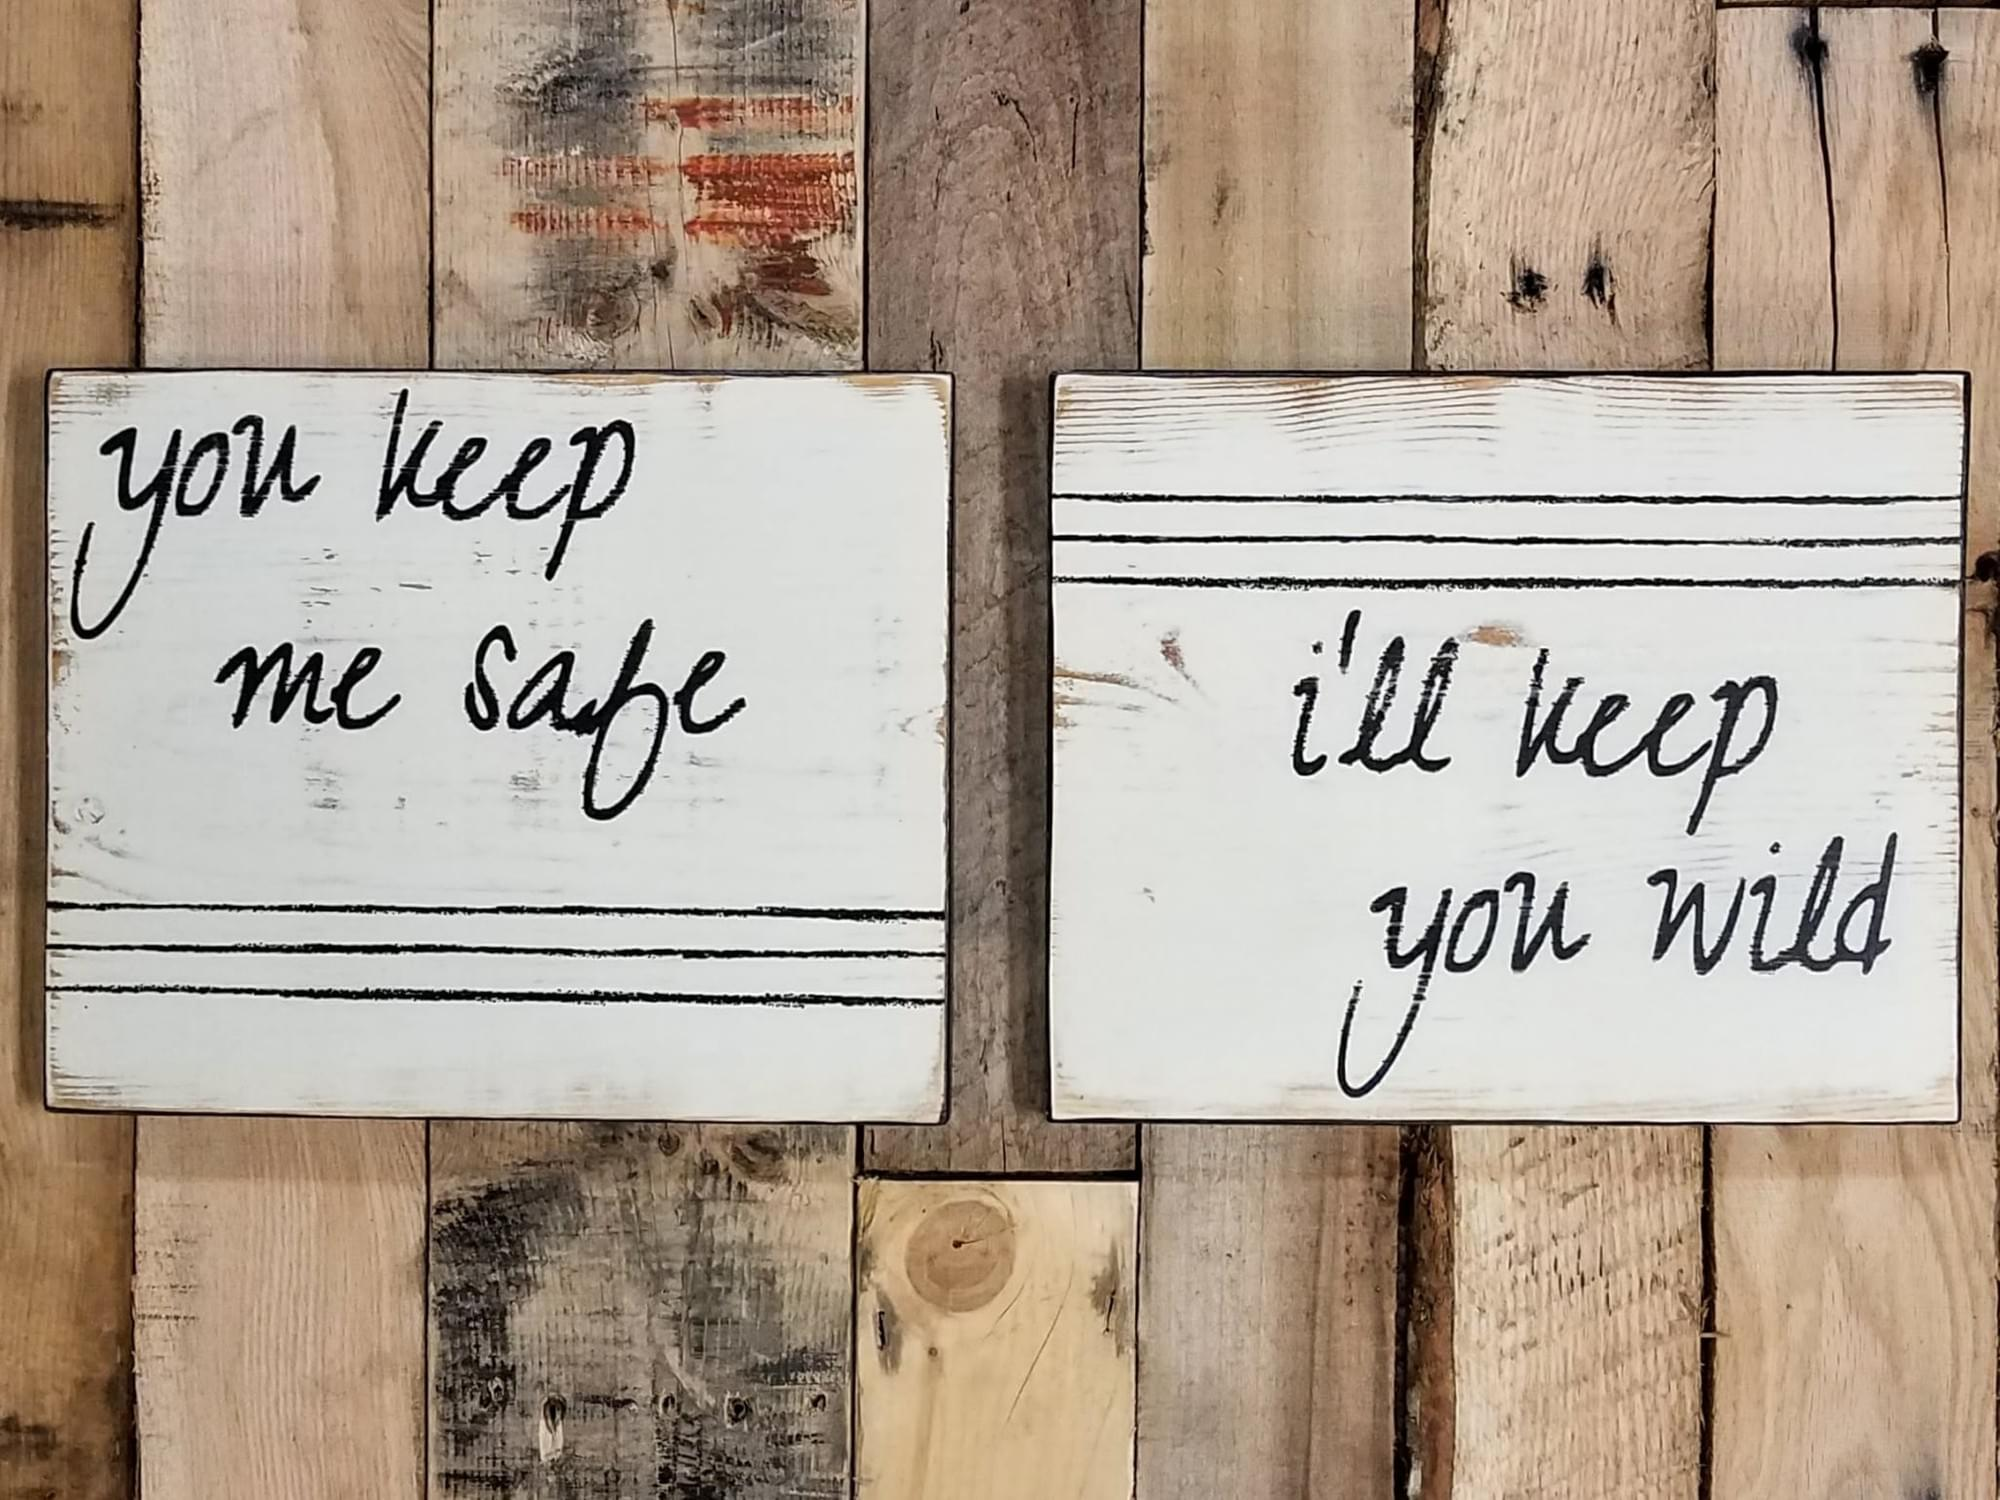 Safe/Wild - Set of 2 Wood Signs